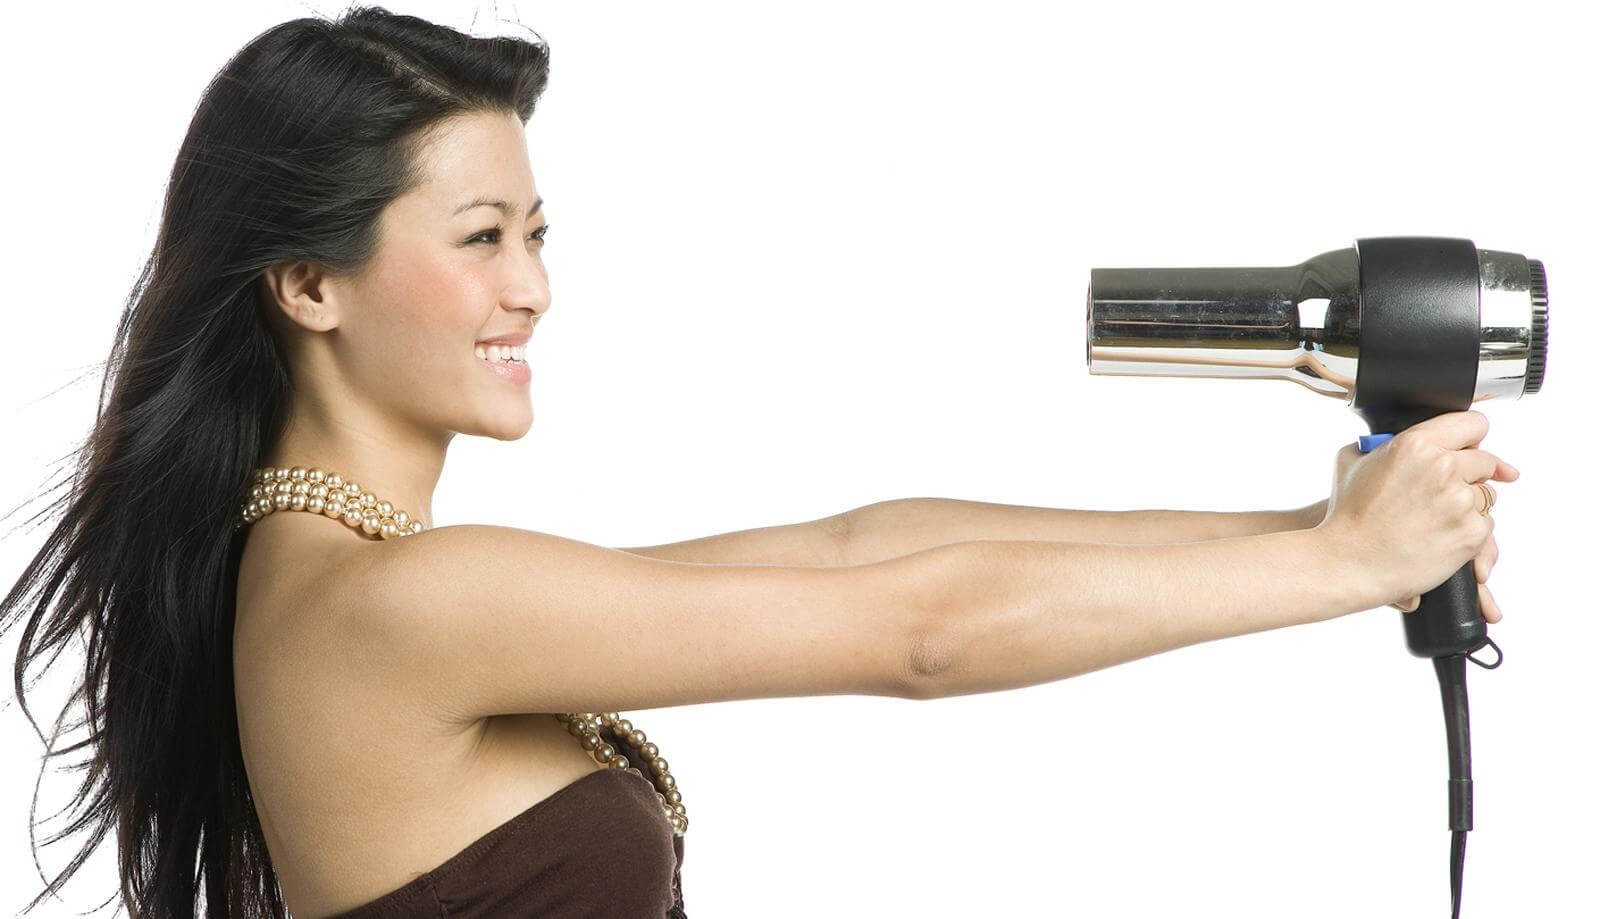 Dry Hair Carefully Tips for Great Looking Hair